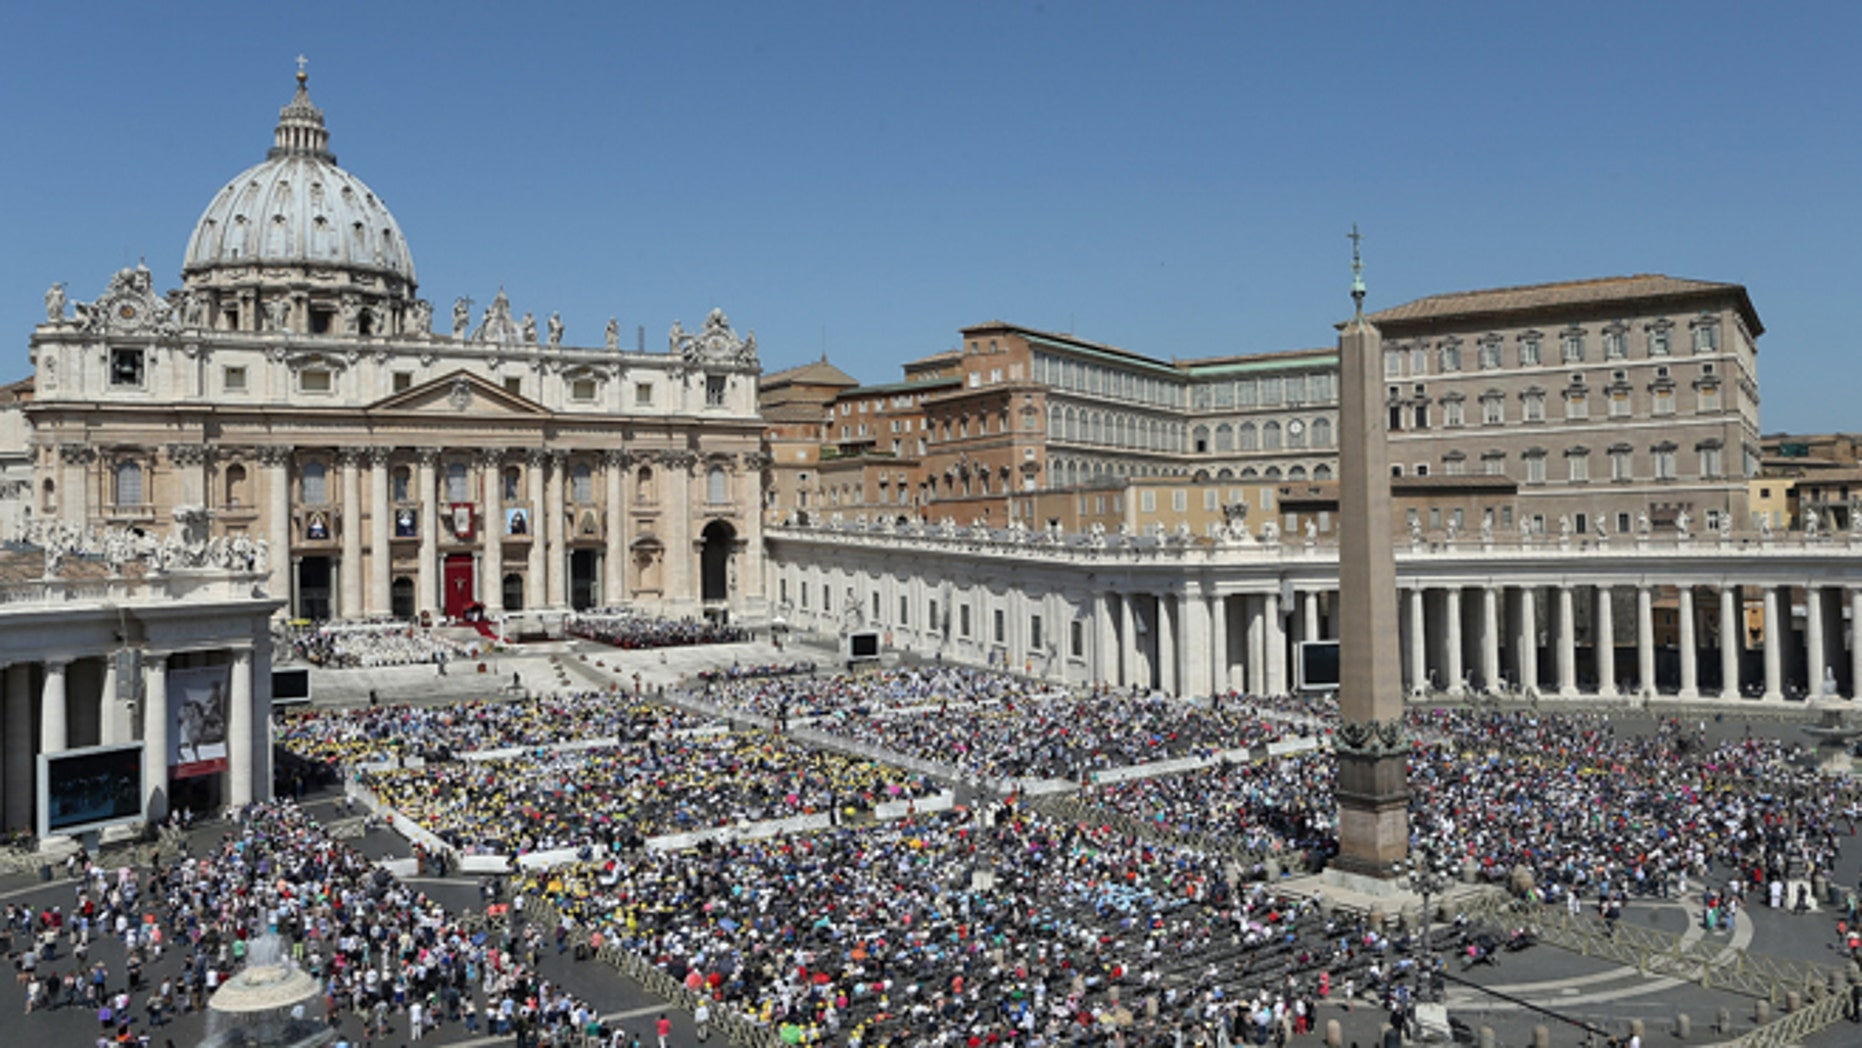 VATICAN CITY, VATICAN - MAY 17:  A view of St. Peter's Square during a canonisation ceremony held by Pope Francis on May 17, 2015 in Vatican City, Vatican. Pope Francis canonized four women religious on Sunday, all 19th century nuns who worked in education. St Marie-Alphonsine and St Mary of Jesus Crucified were from the territory that made up historical Palestine; St Jeanne Emilie de Villeneuve was a French nun and foundress; and St Maria Cristina of the Immaculate Conception.  (Photo by Franco Origlia/Getty Images)